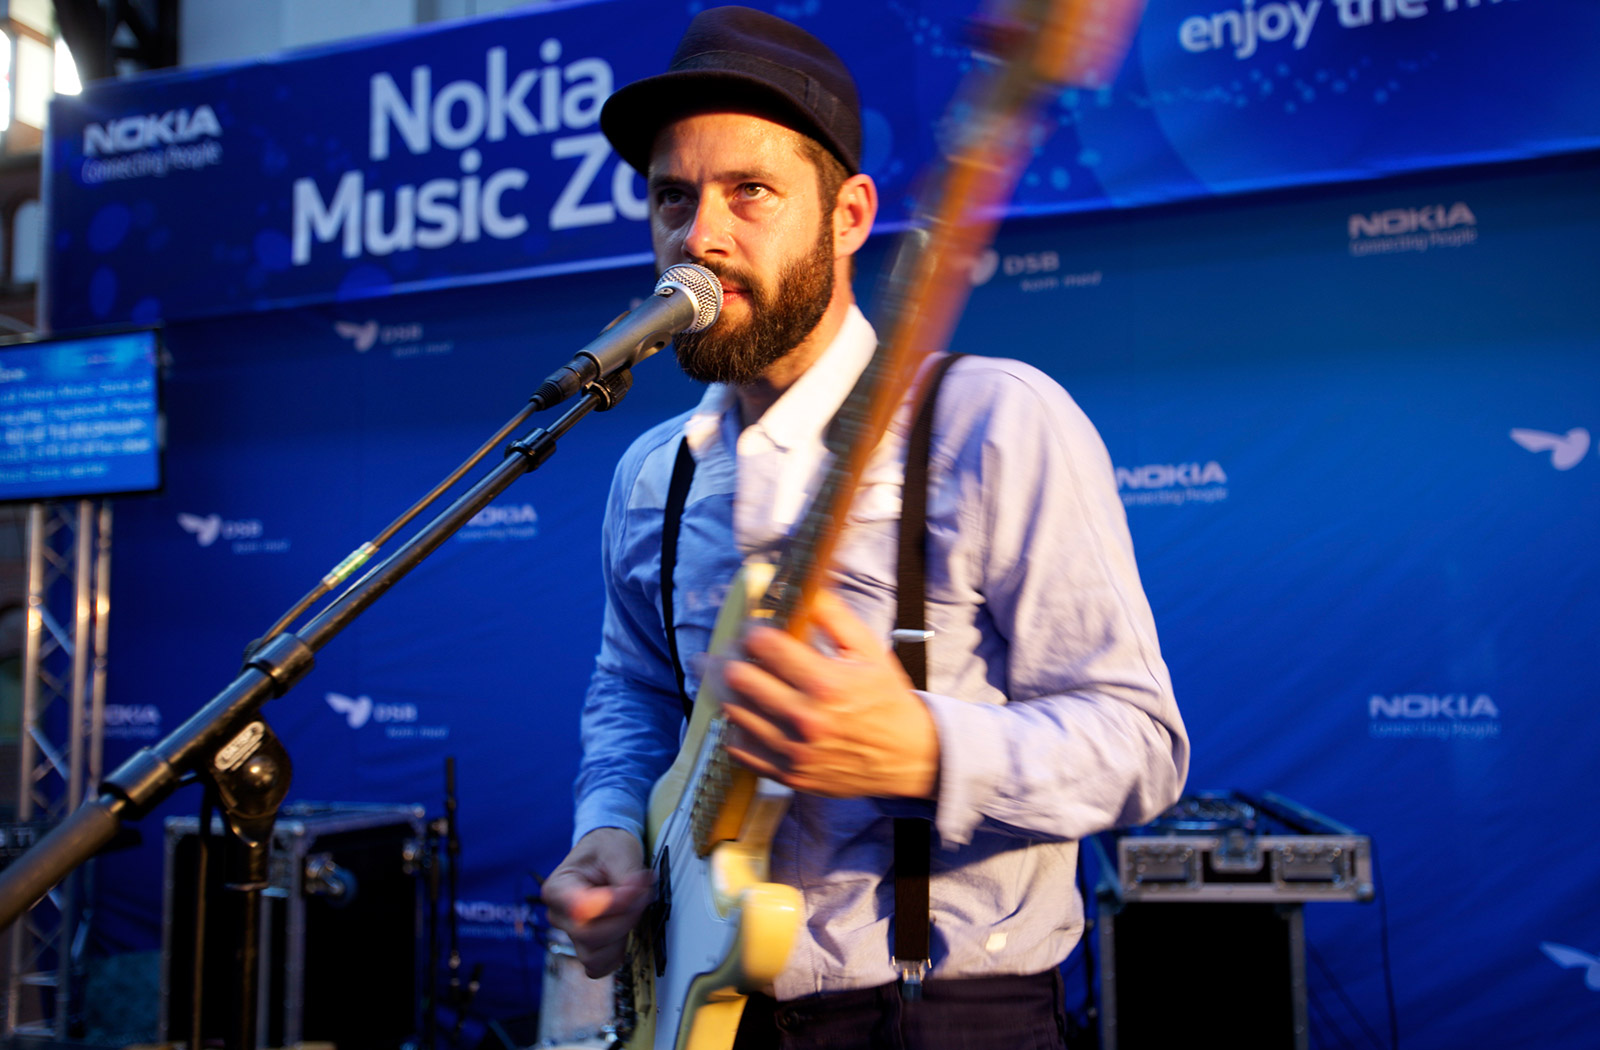 Nokia Music Zone